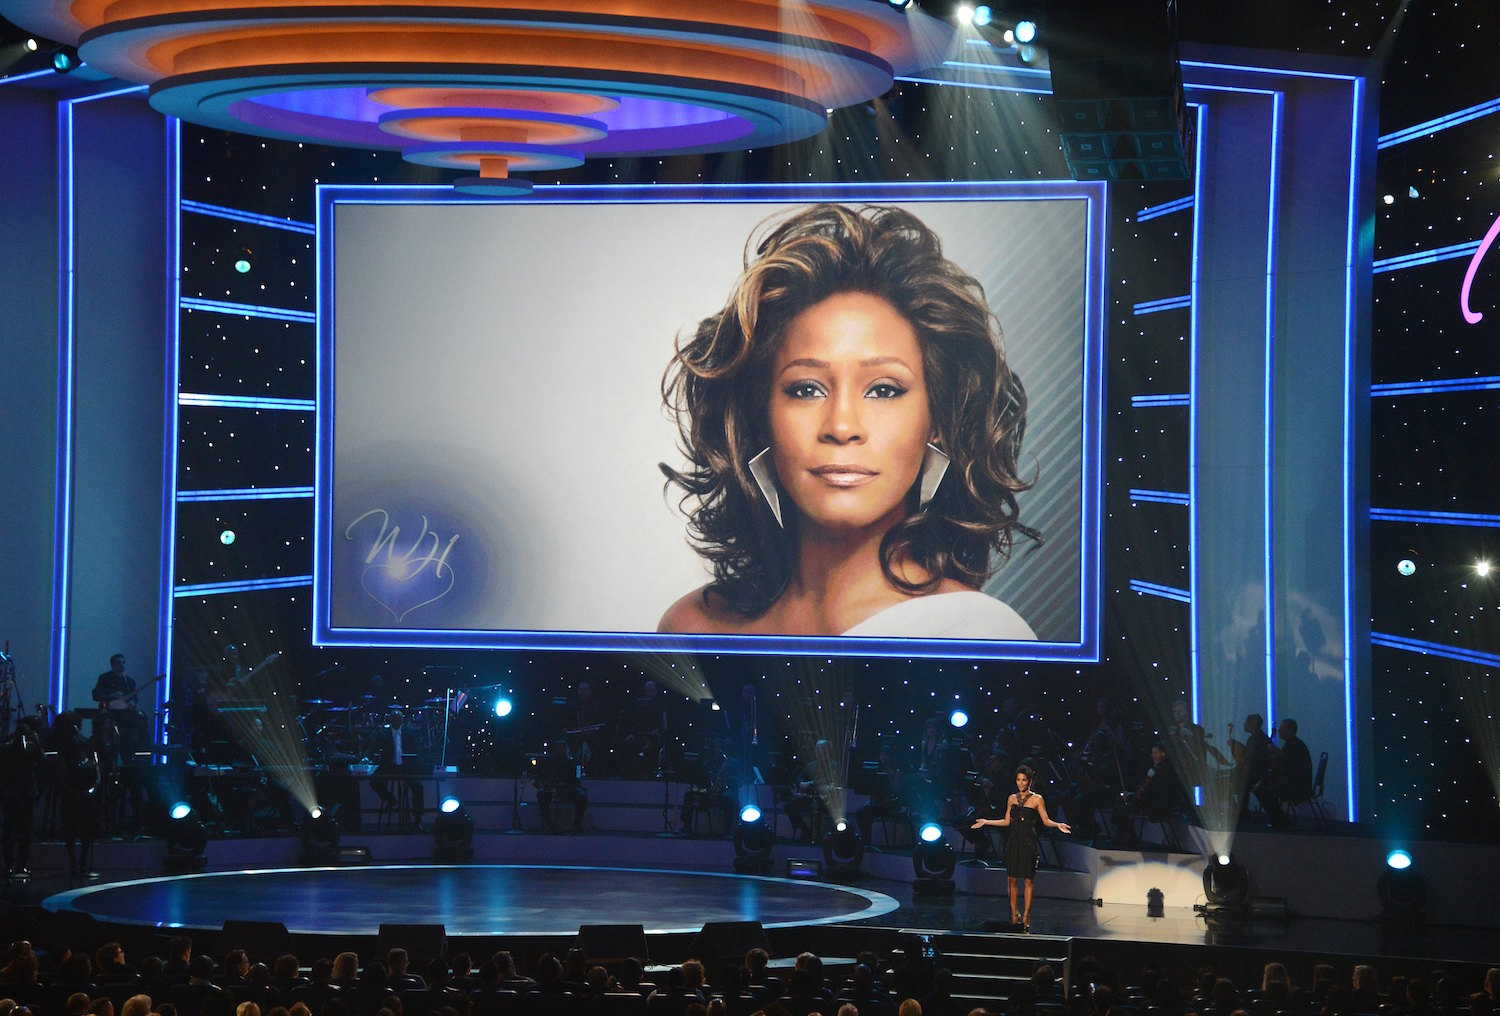 Documental proyectado en Cannes revela que Whitney Houston fue agredida sexualmente de niña